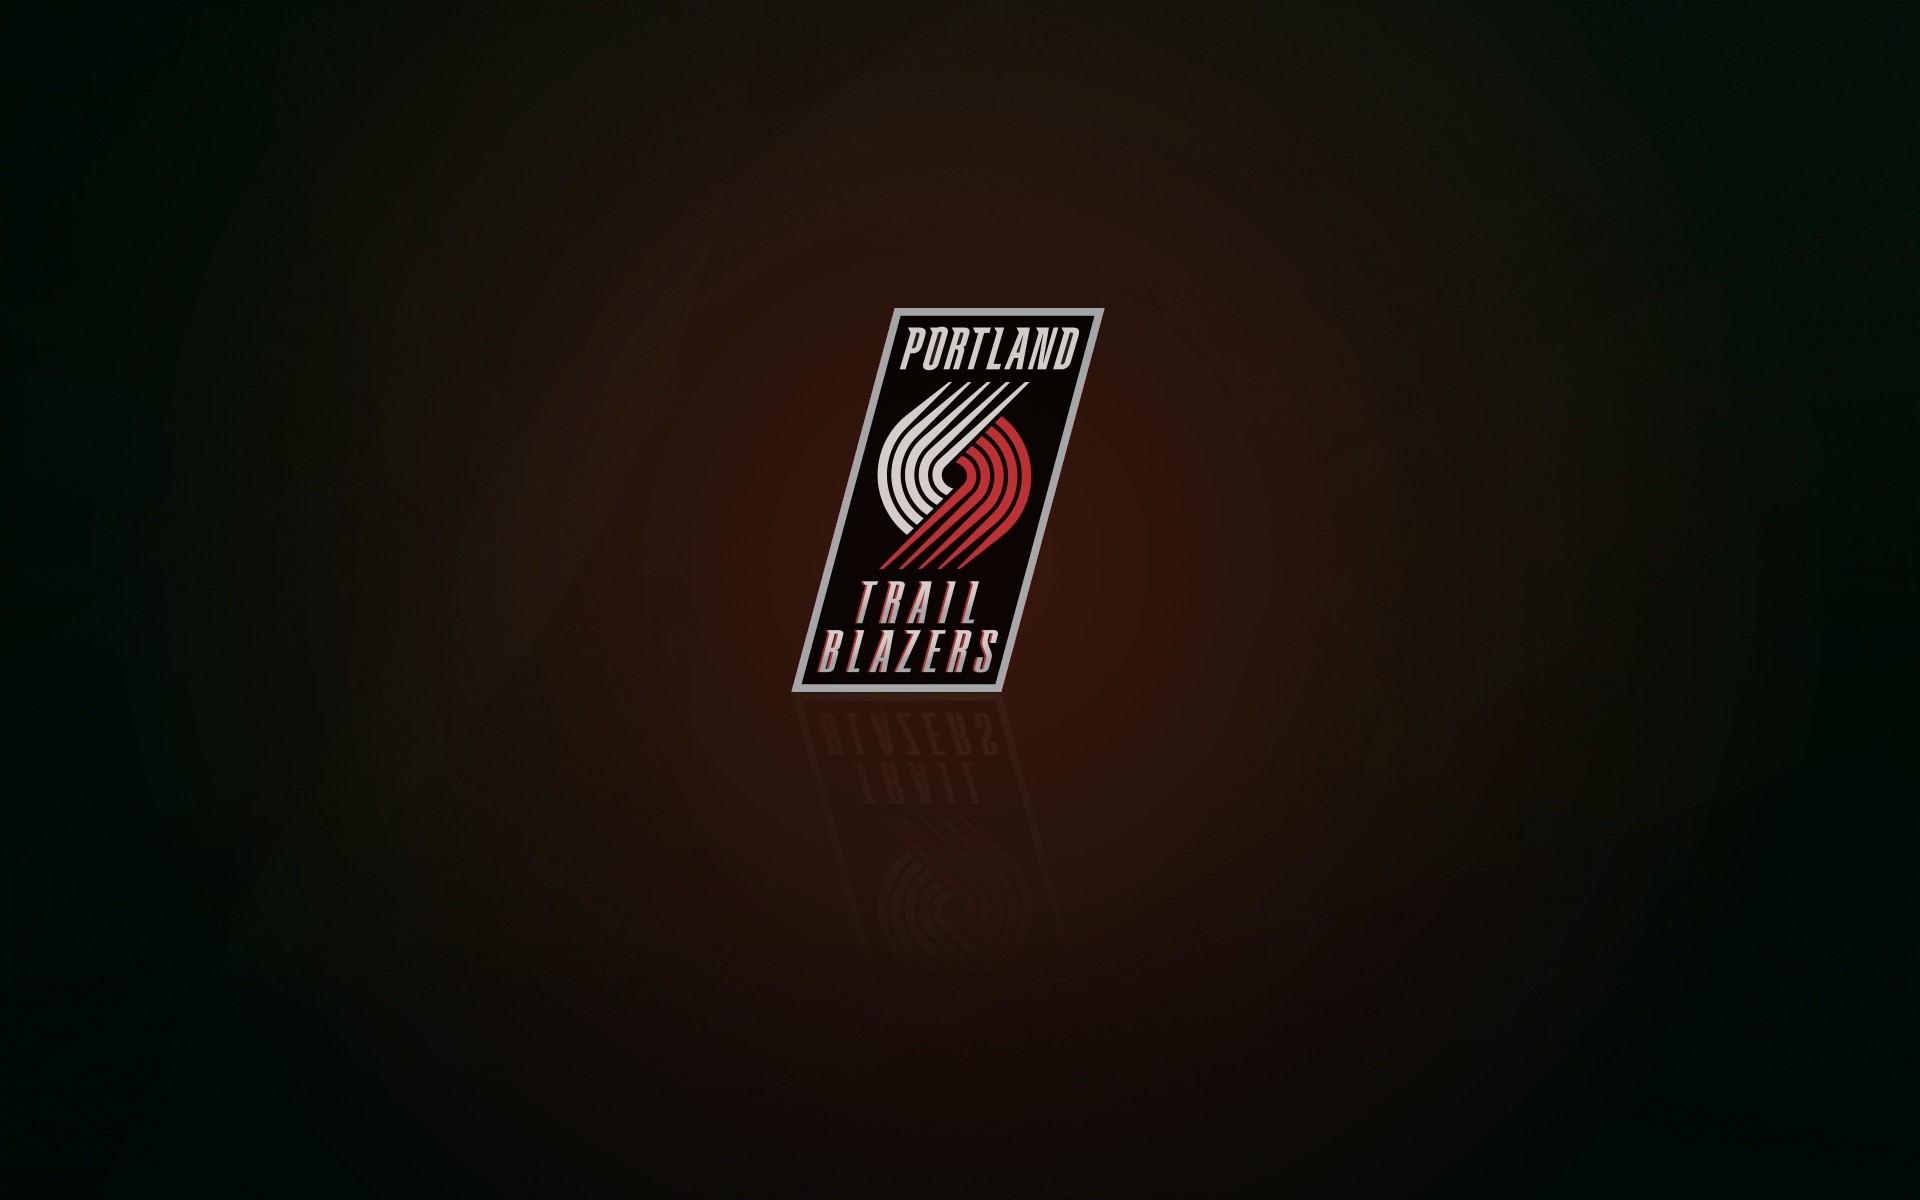 Portland Trail Blazers wallpaper and logo with shadow, widescreen  1920x1200px, 16×10